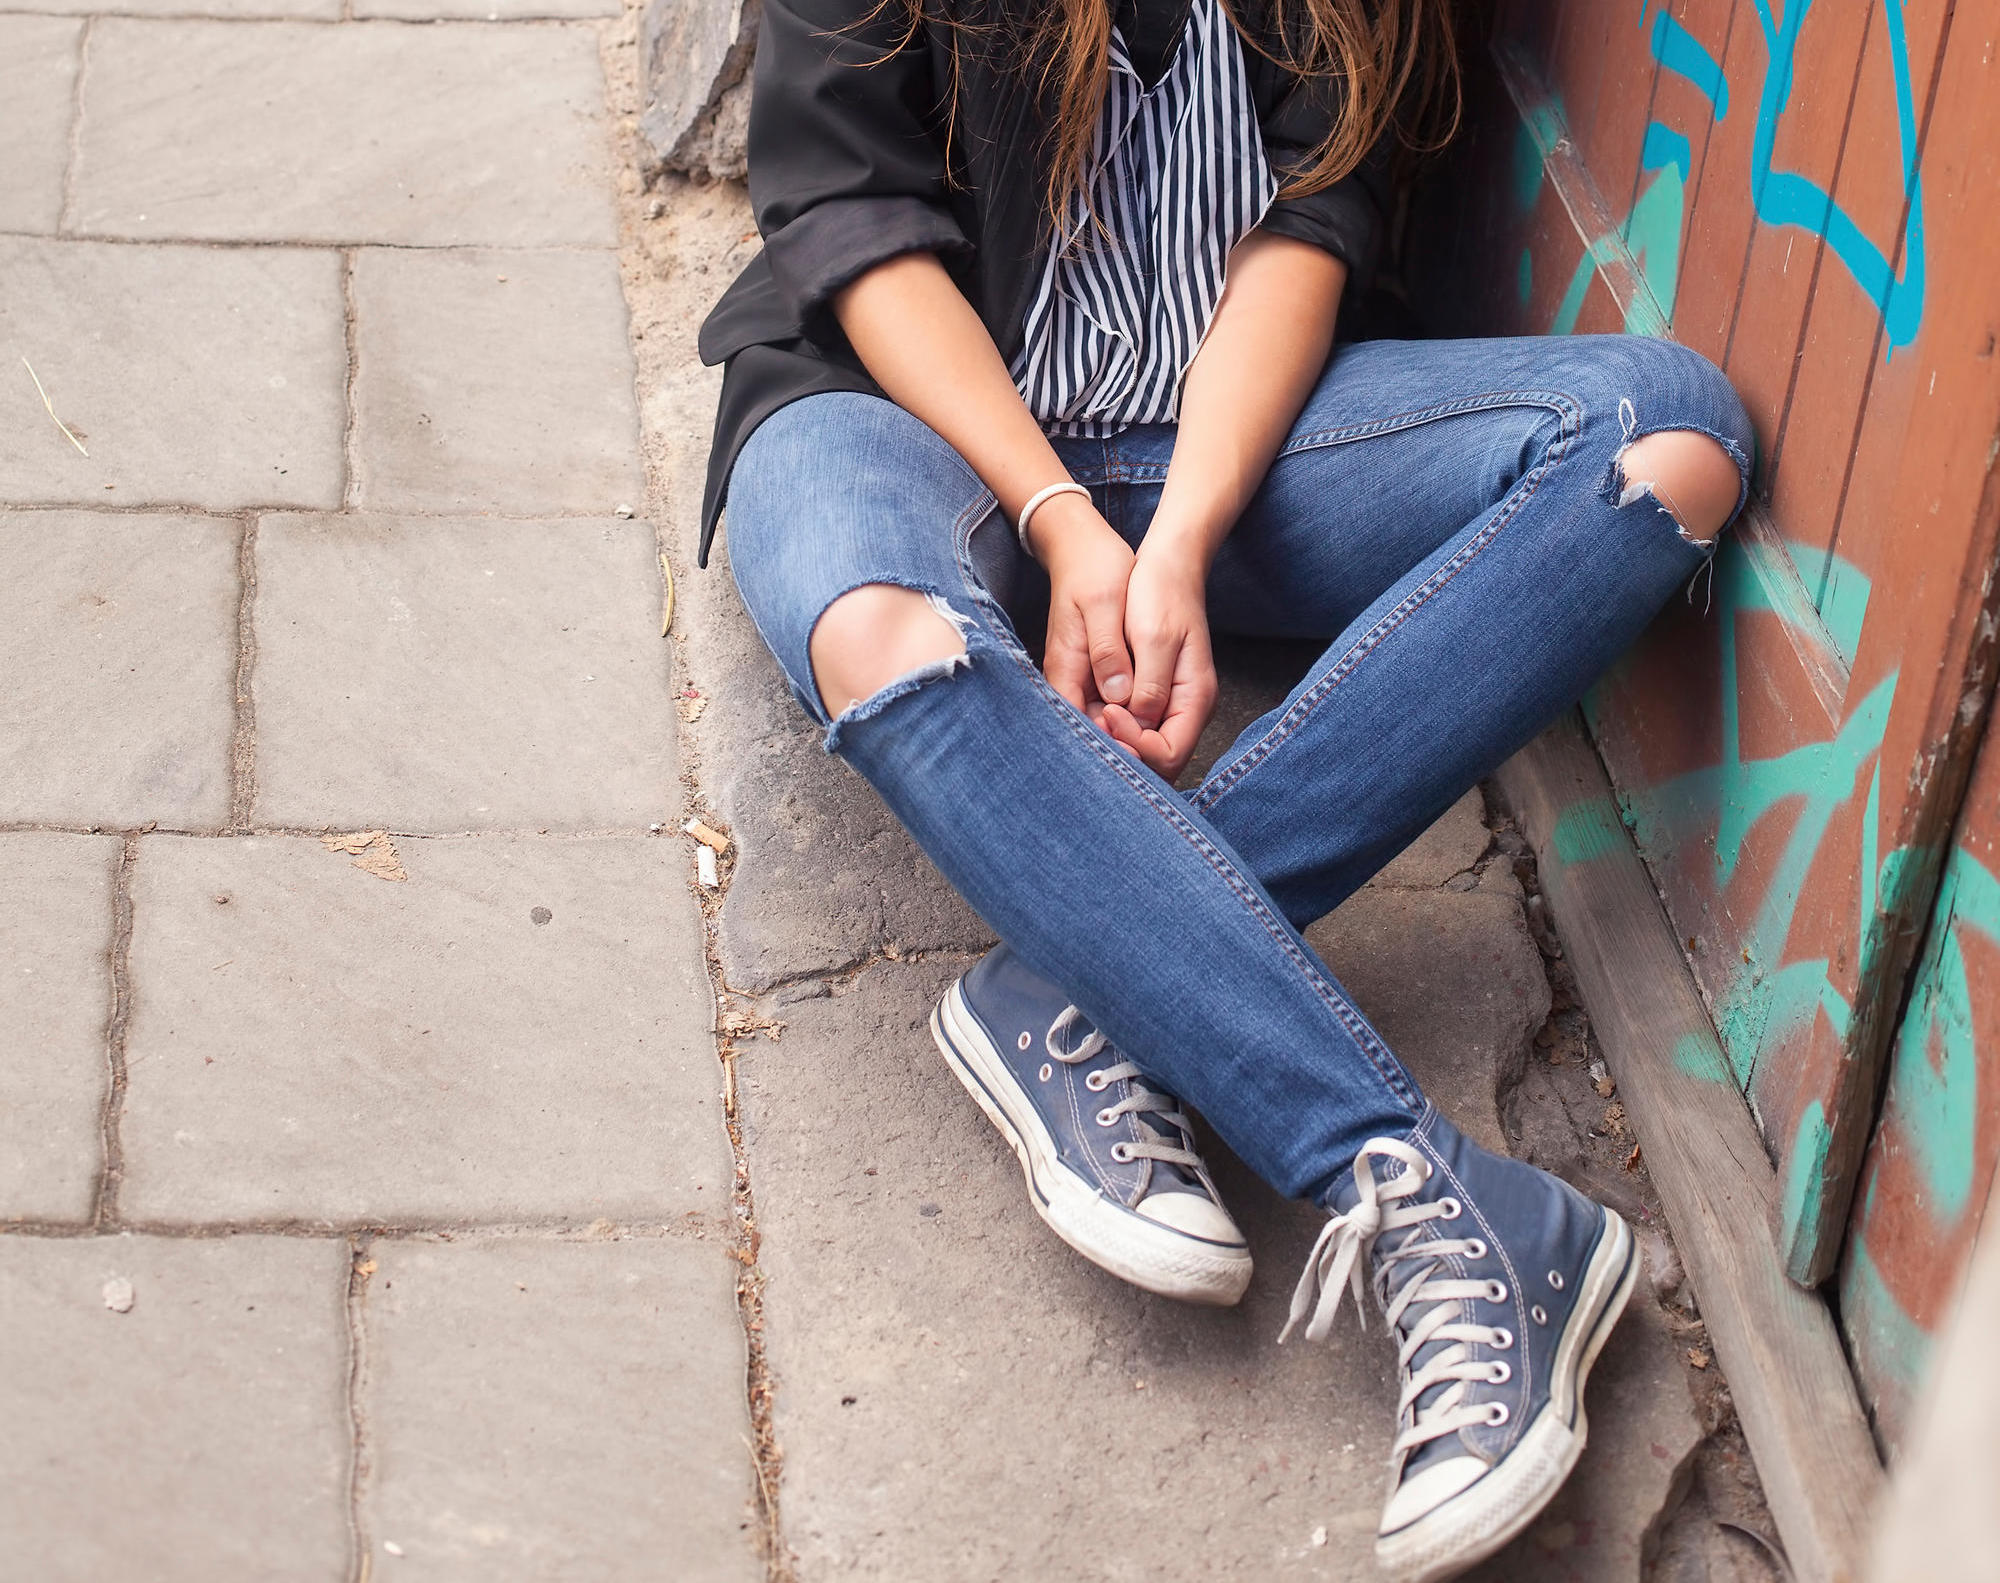 Young hipster girl sitting on the street.